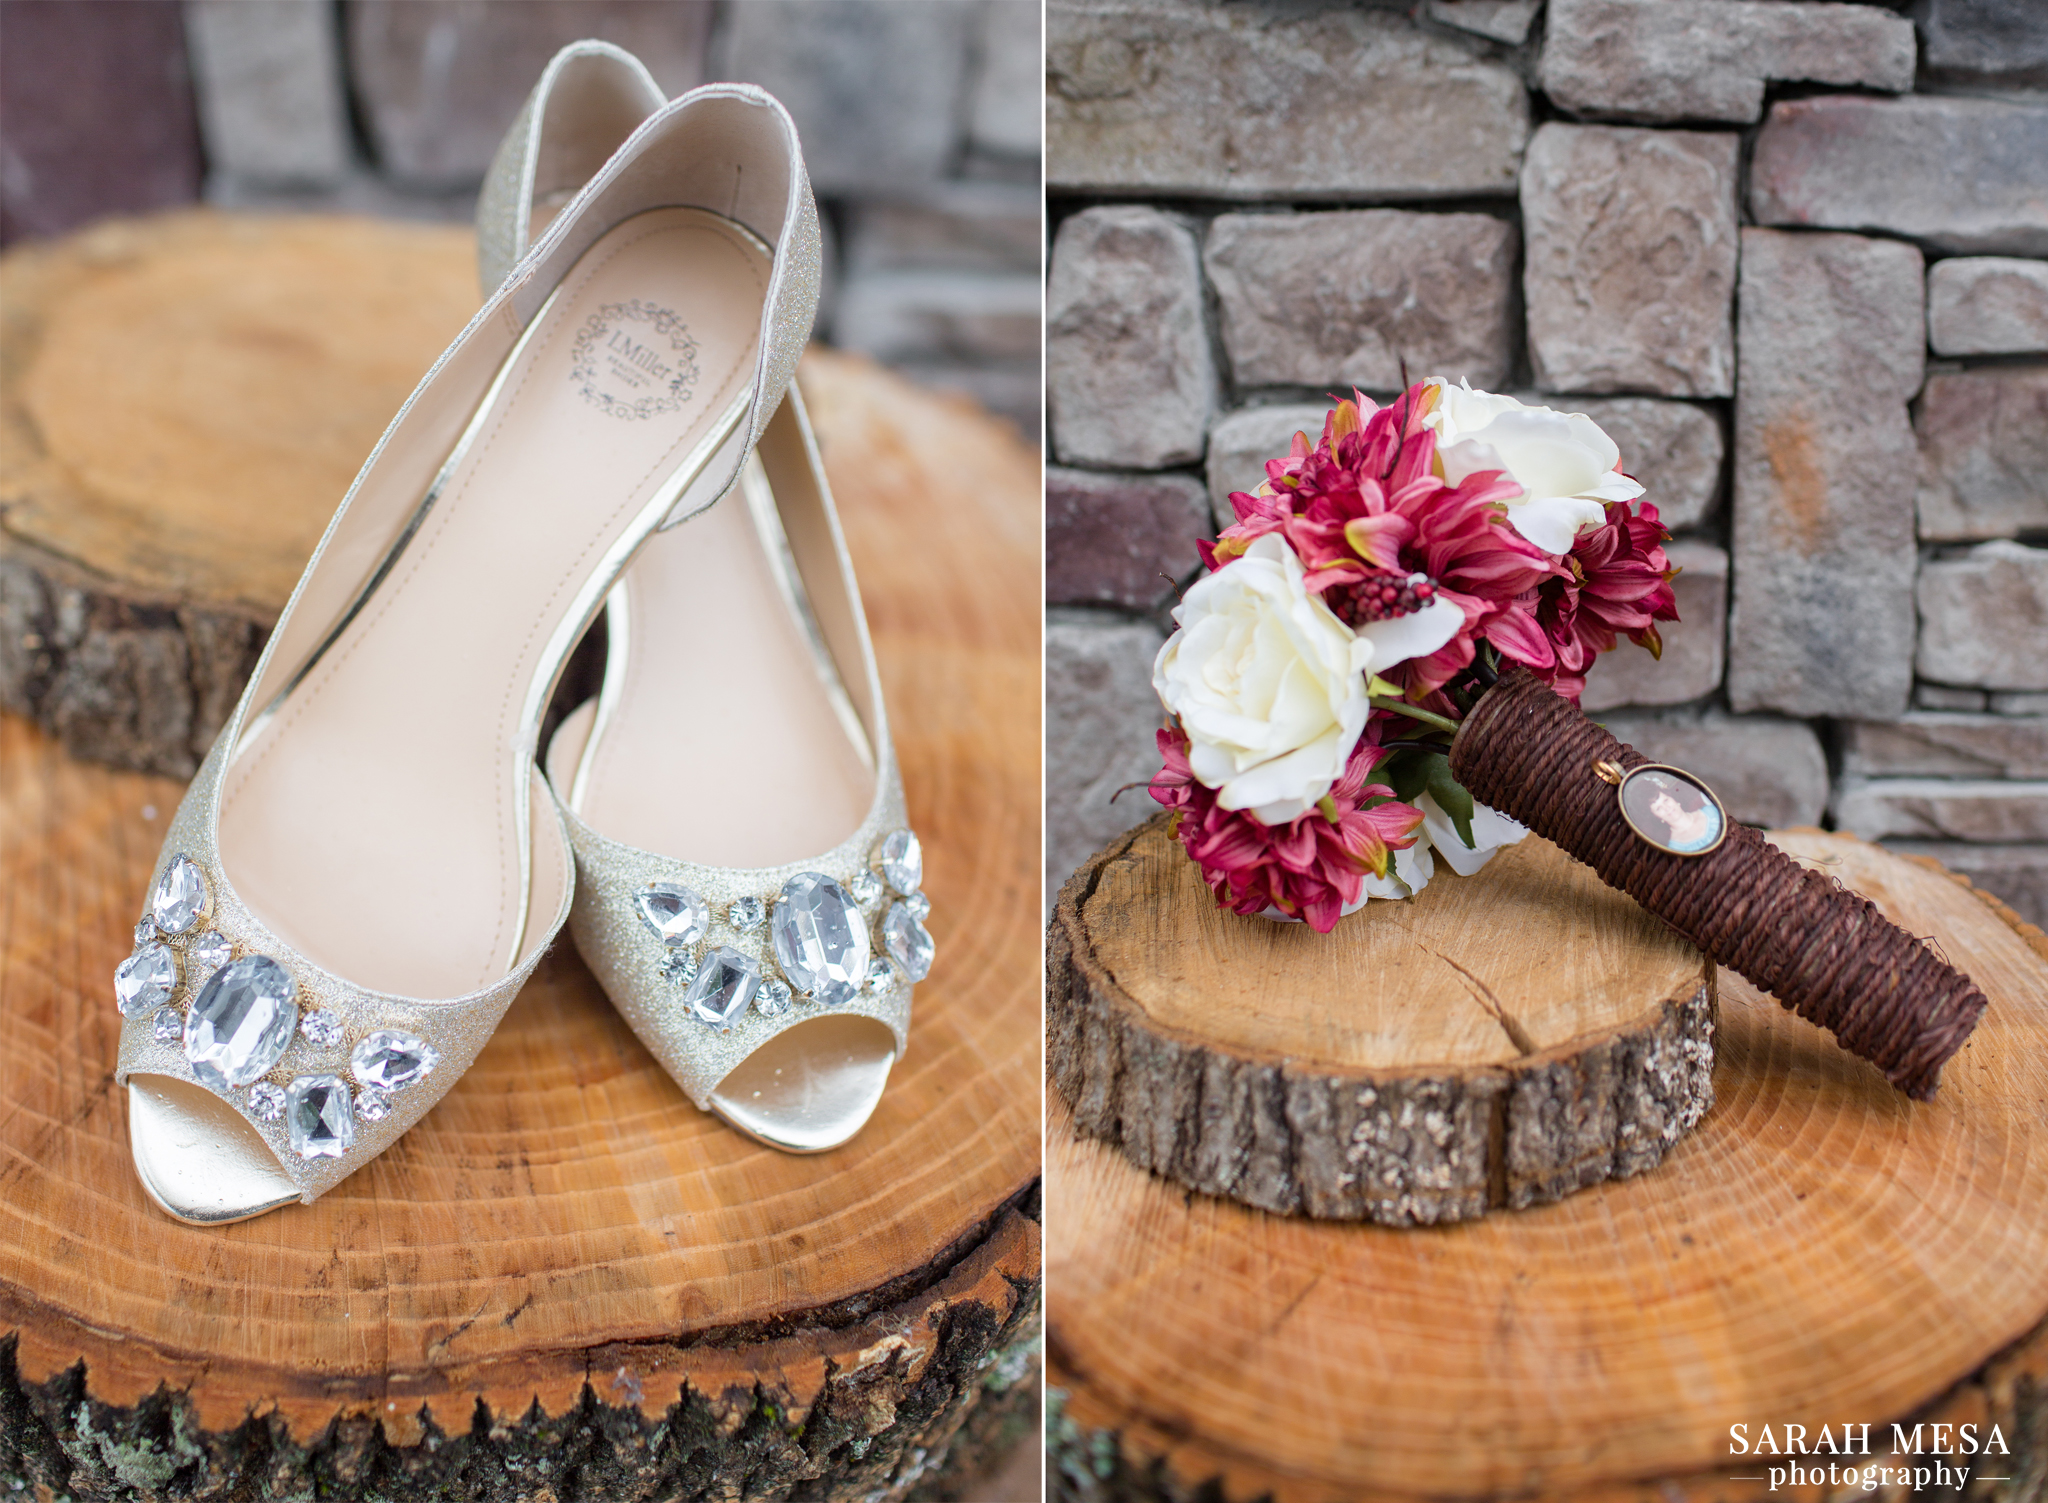 Sarah Mesa Photography | Louisville, KY Wedding Photographer